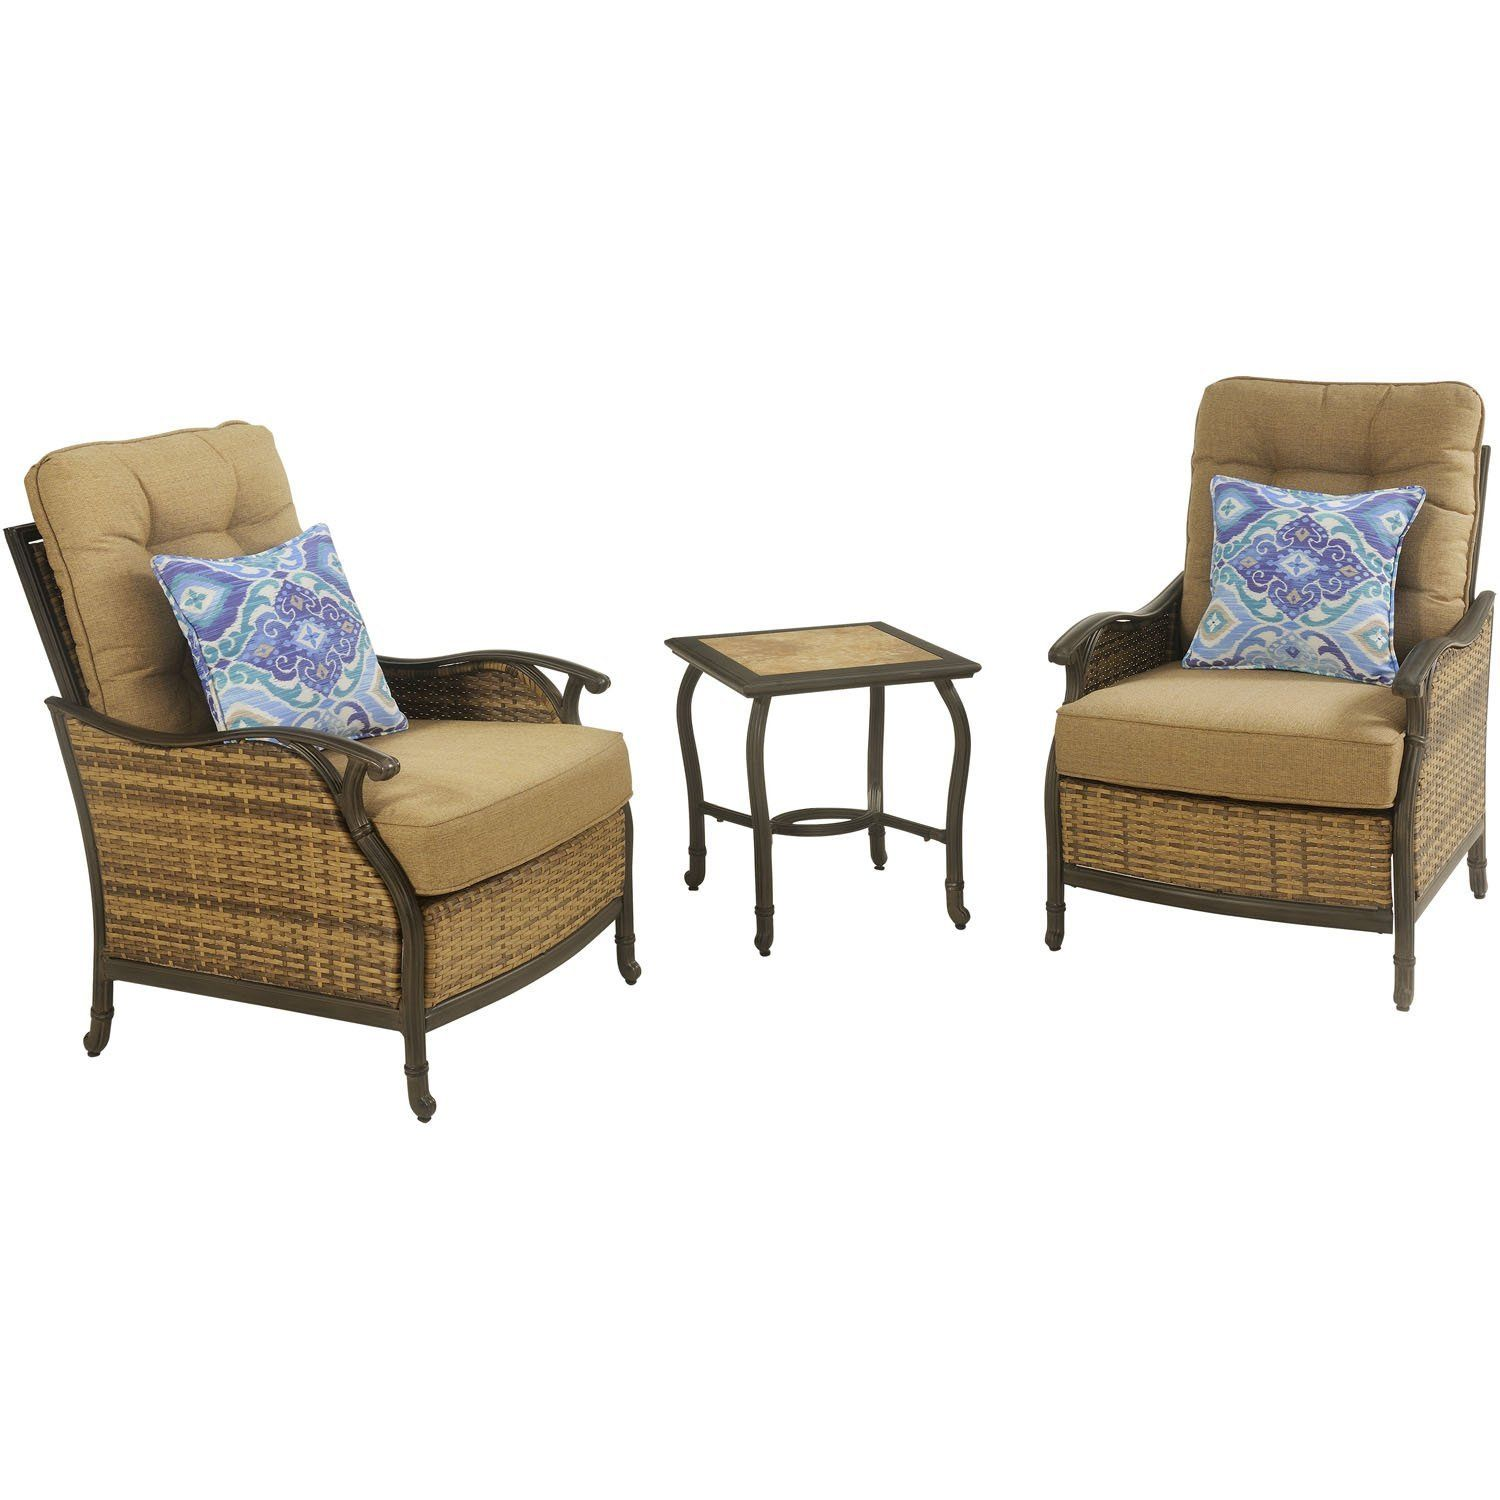 Attrayant Hudson Outdoor Furniture   Best Quality Furniture Check More At  Http://cacophonouscreations.